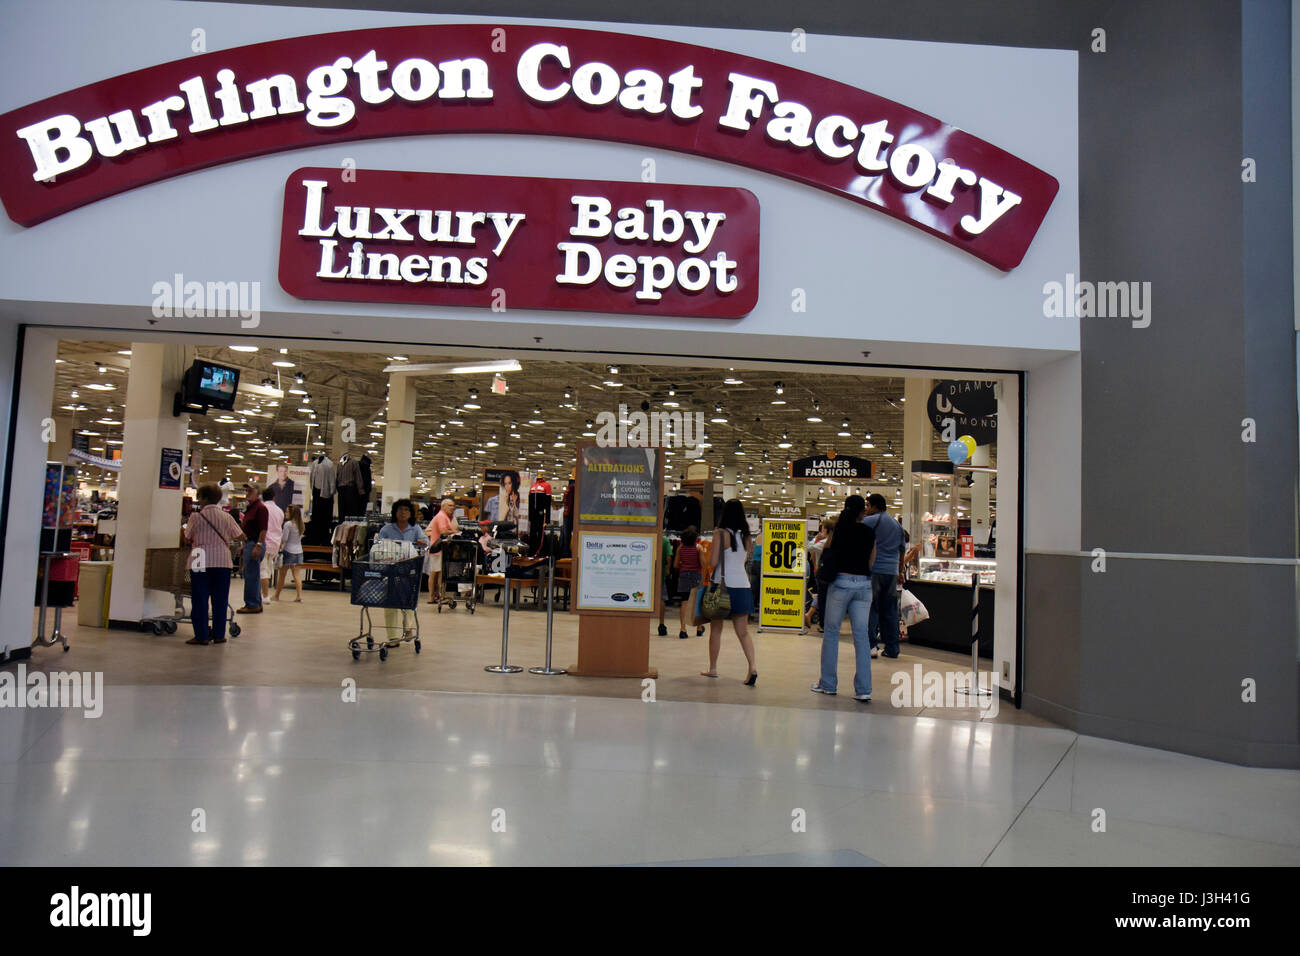 canada goose at burlington coat factory